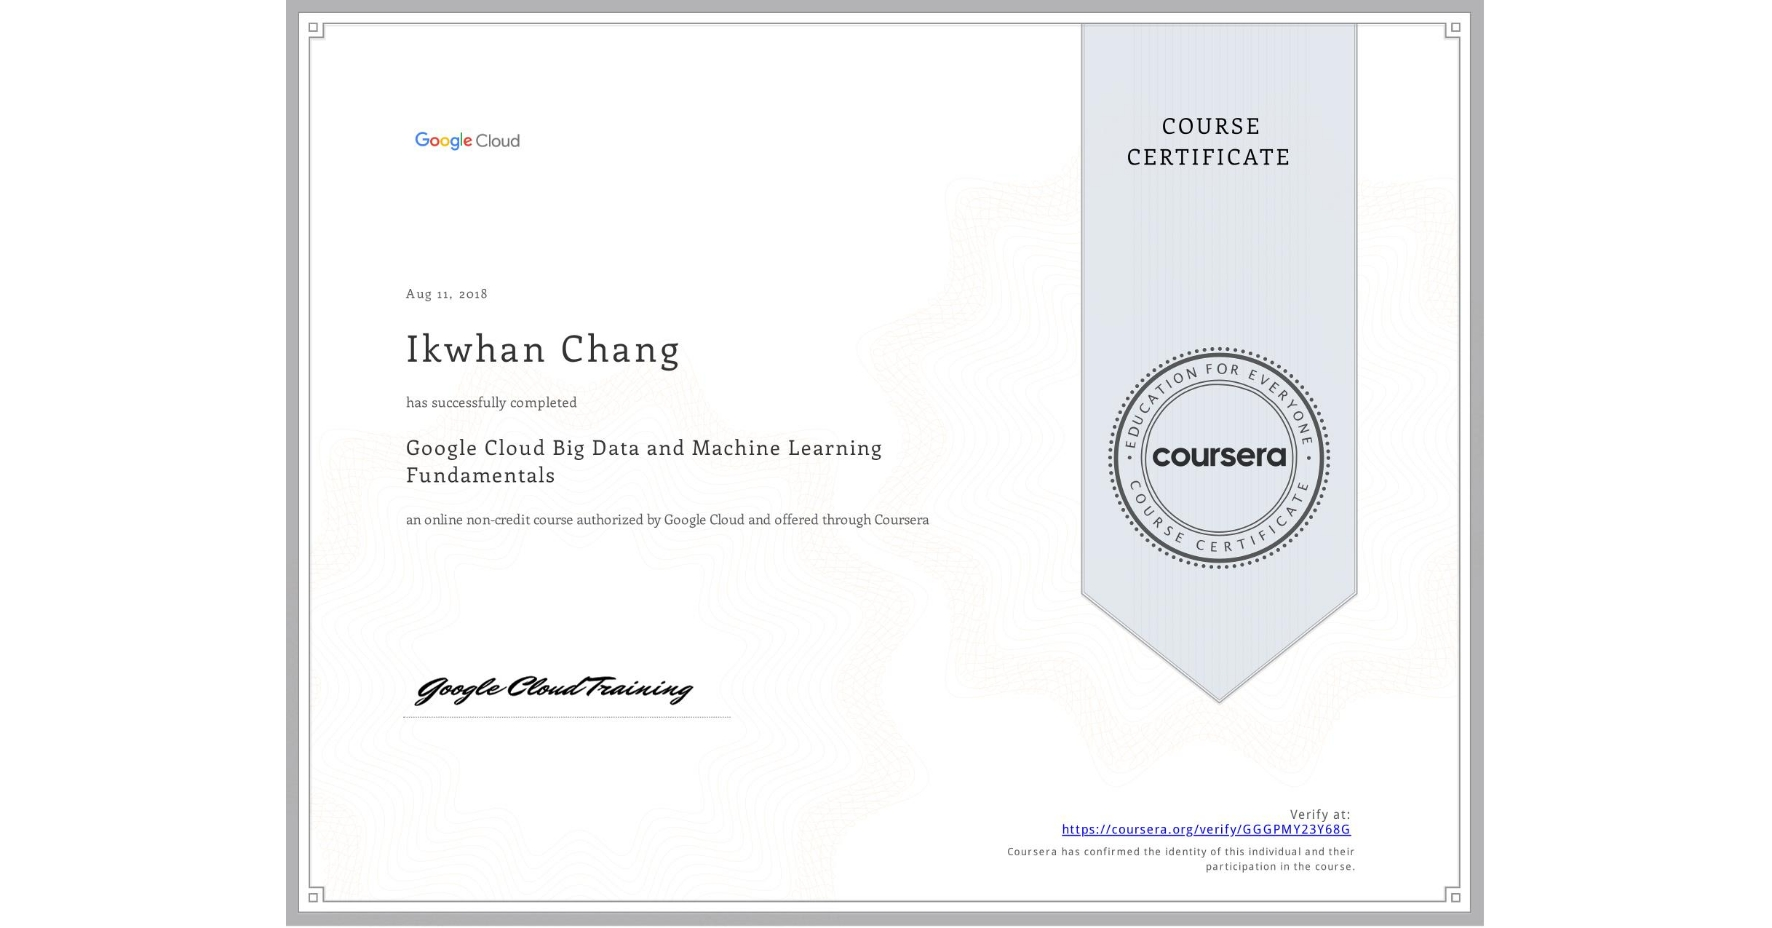 View certificate for Ikwhan Chang, Google Cloud Big Data and Machine Learning Fundamentals, an online non-credit course authorized by Google Cloud and offered through Coursera